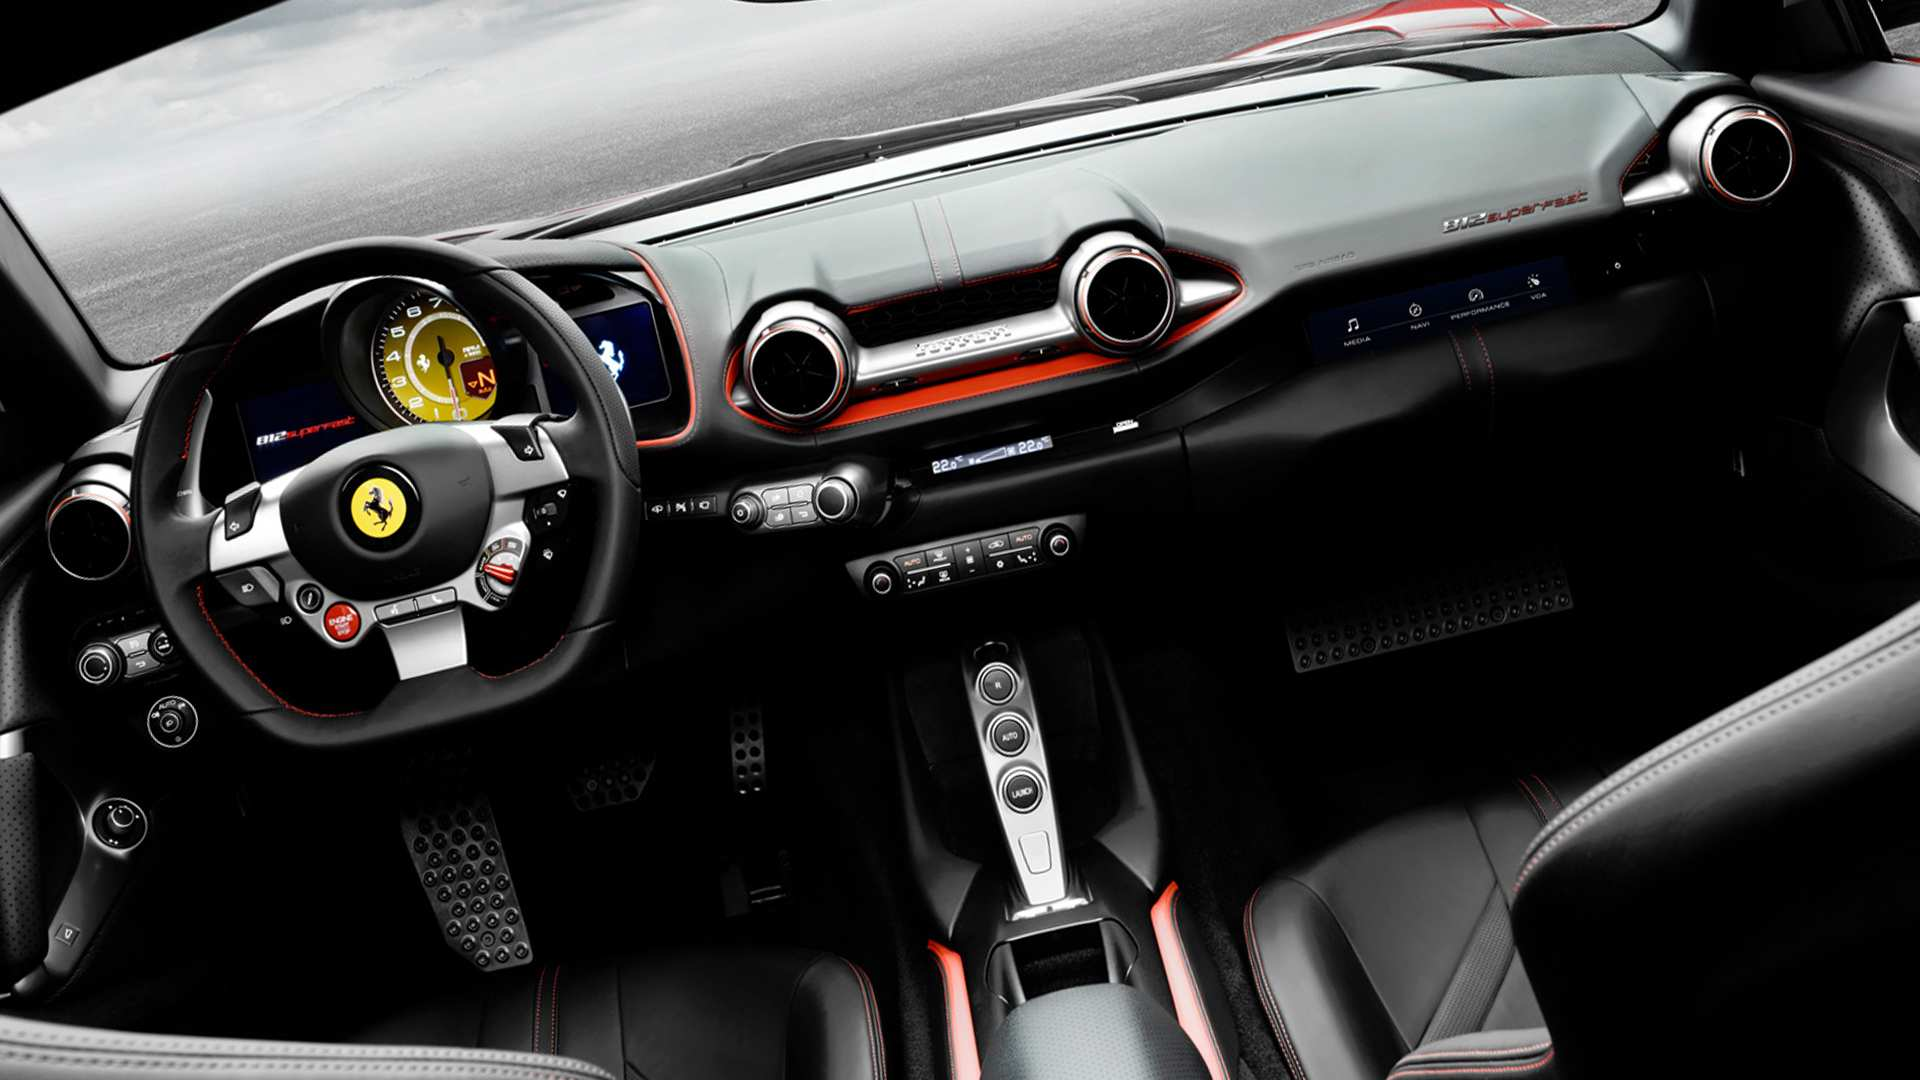 68 The Best 2019 Ferrari Superfast Interior Redesign And Review